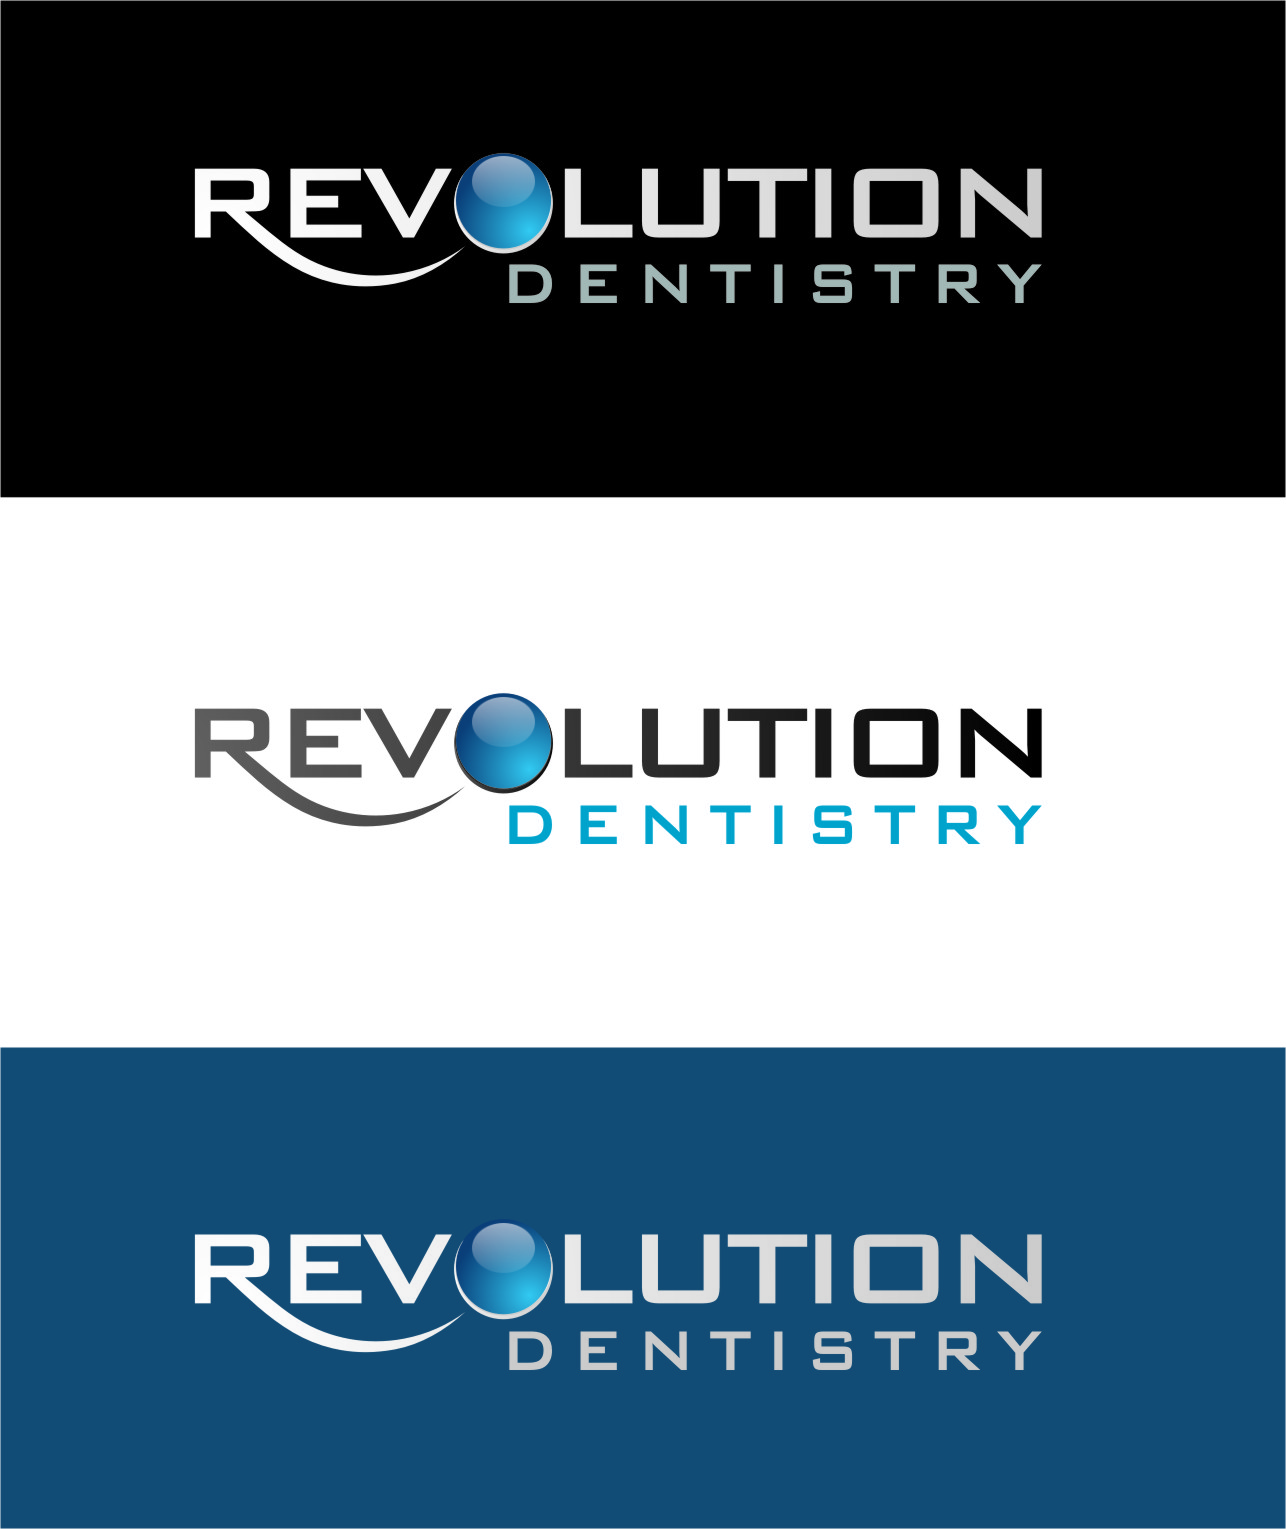 Logo Design by RasYa Muhammad Athaya - Entry No. 188 in the Logo Design Contest Artistic Logo Design for Revolution Dentistry.